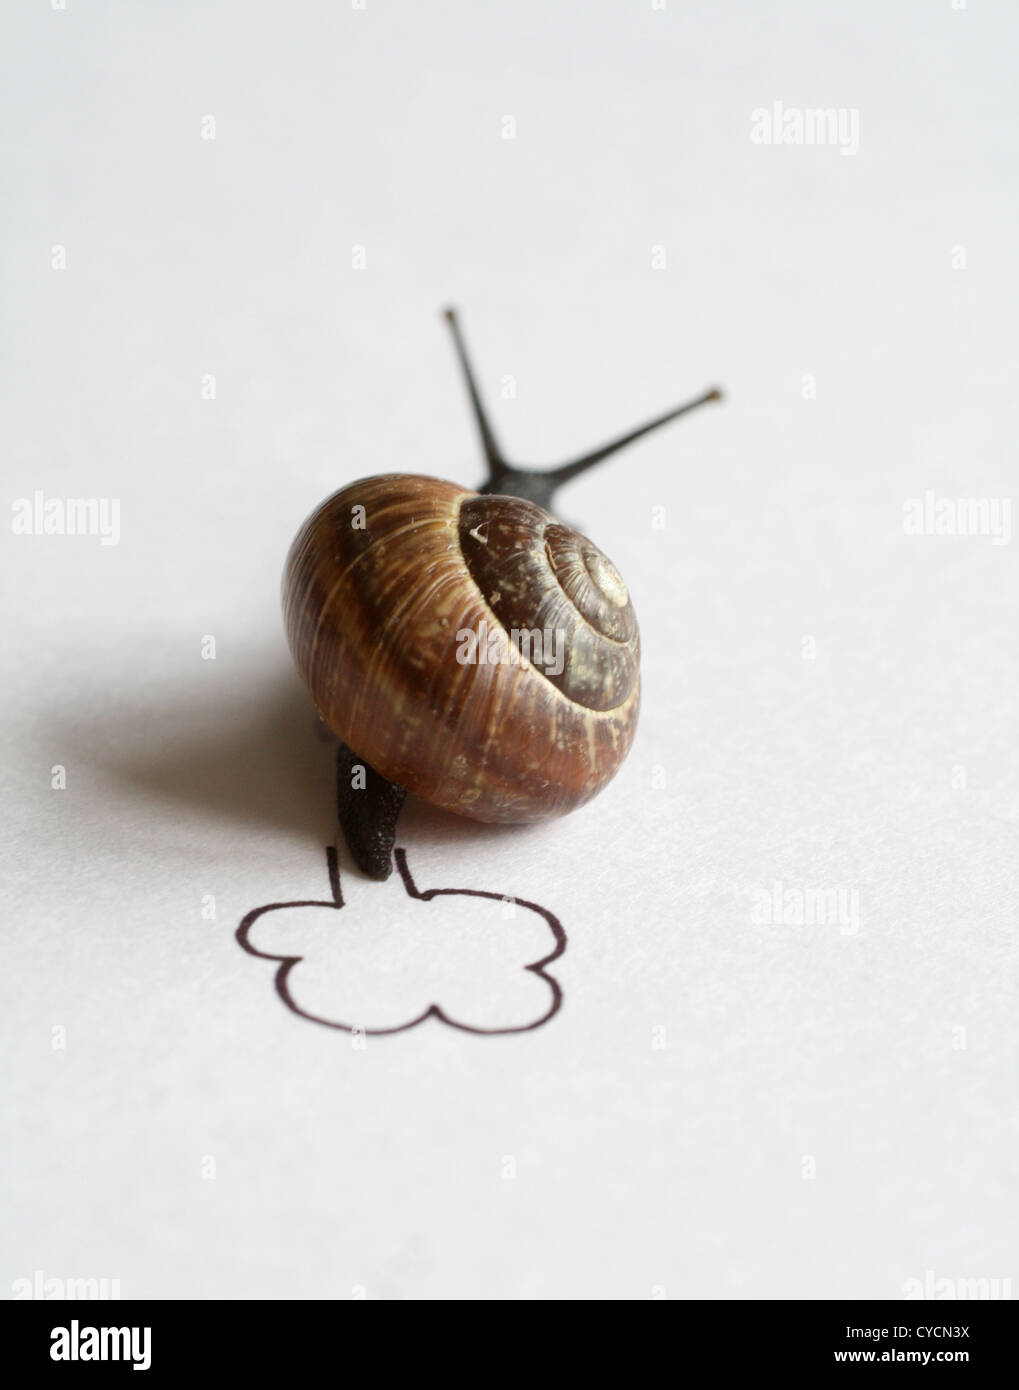 ,Escargot escargot,course d'escargots Banque D'Images